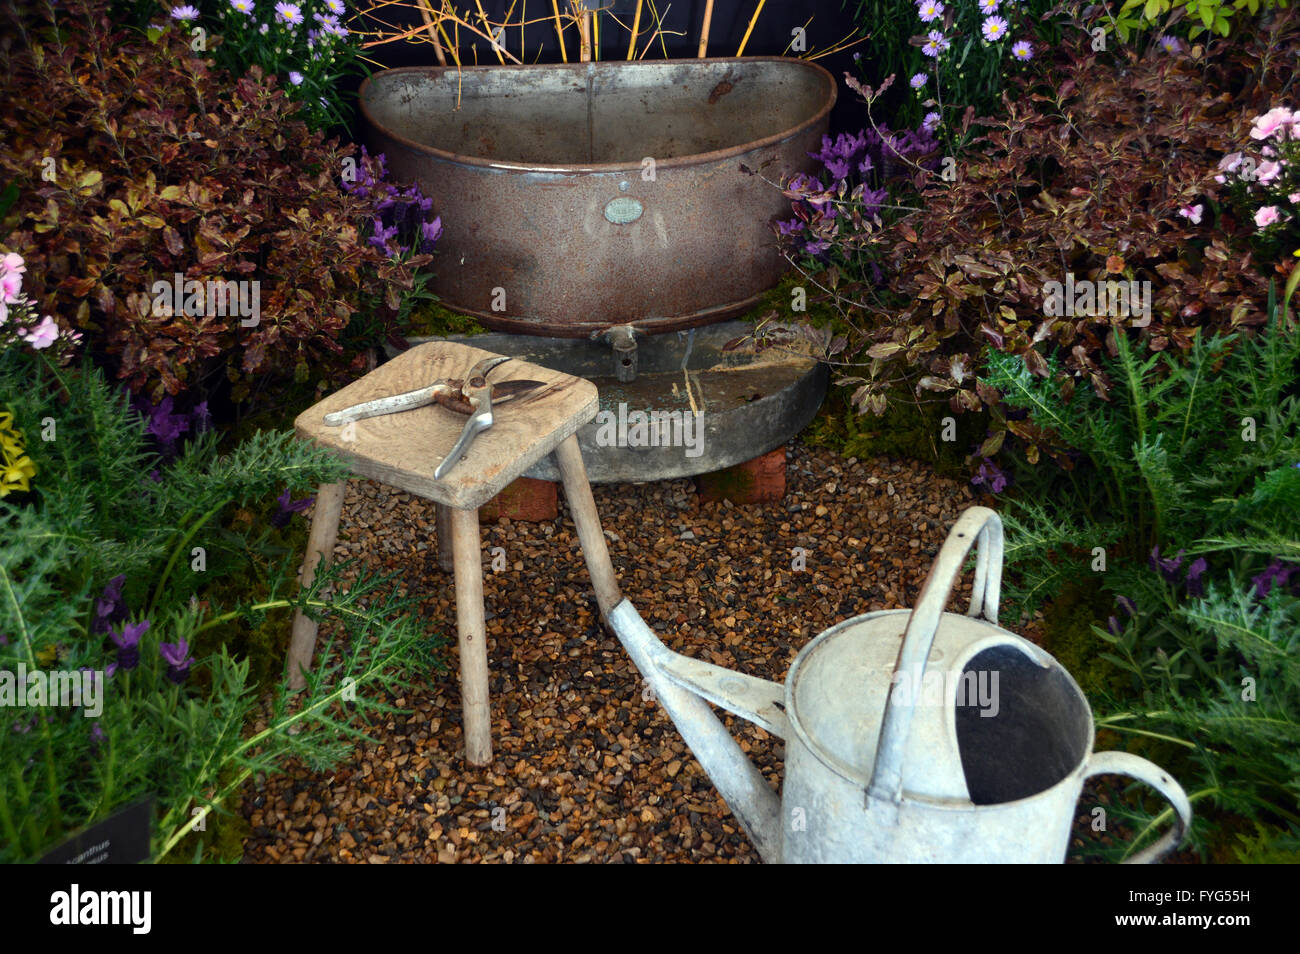 Tin Bath & Watering Can with Wooden Stool & Secateurs in Garden Display at the Harrogate Spring Flower Show. - Stock Image